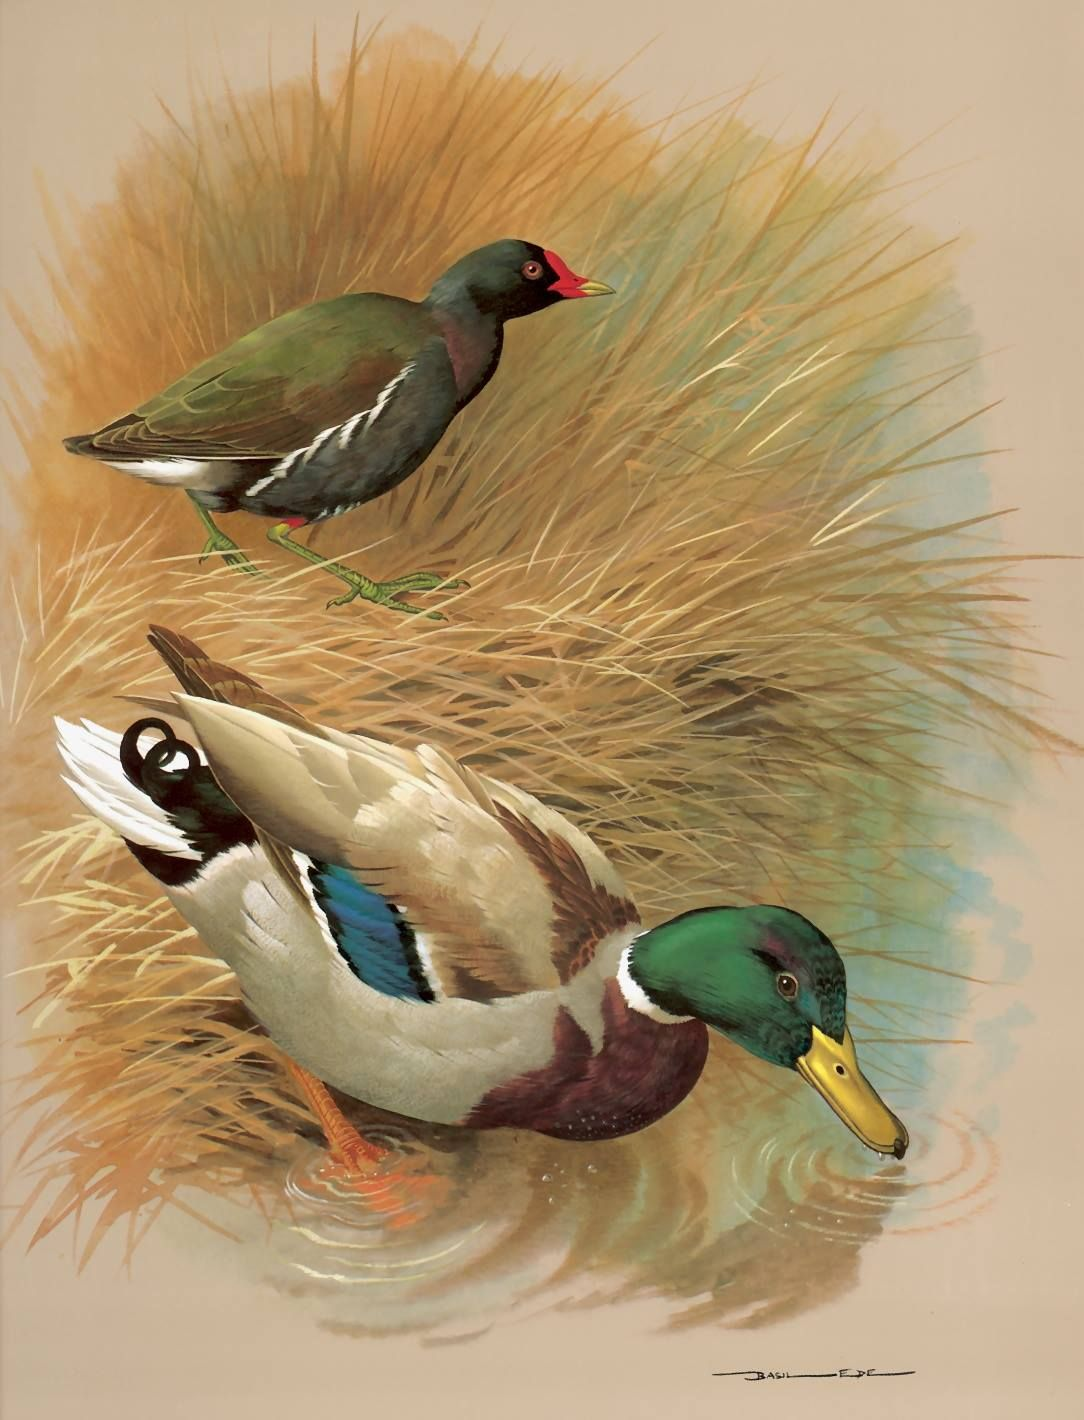 moor hen and mallard duck a painting by basil ede basil ede born